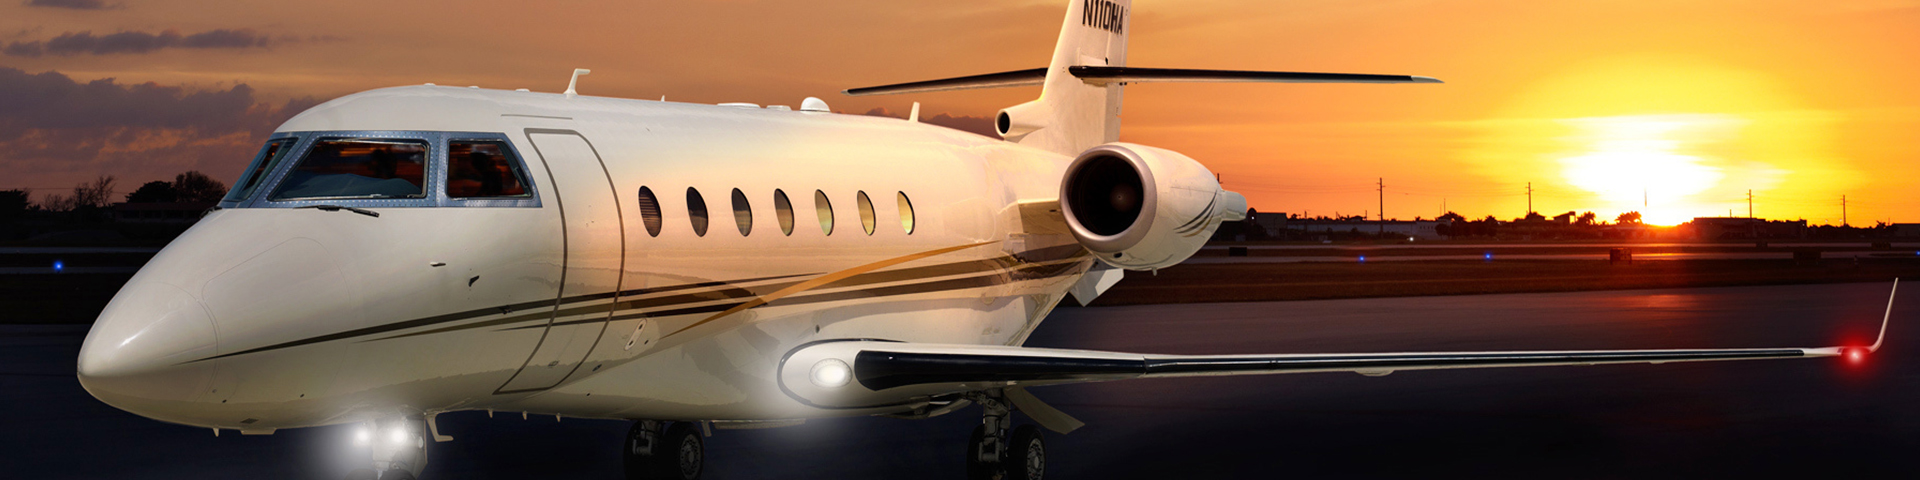 gulfstream g2001 - Gulfstream G200 Private Jet